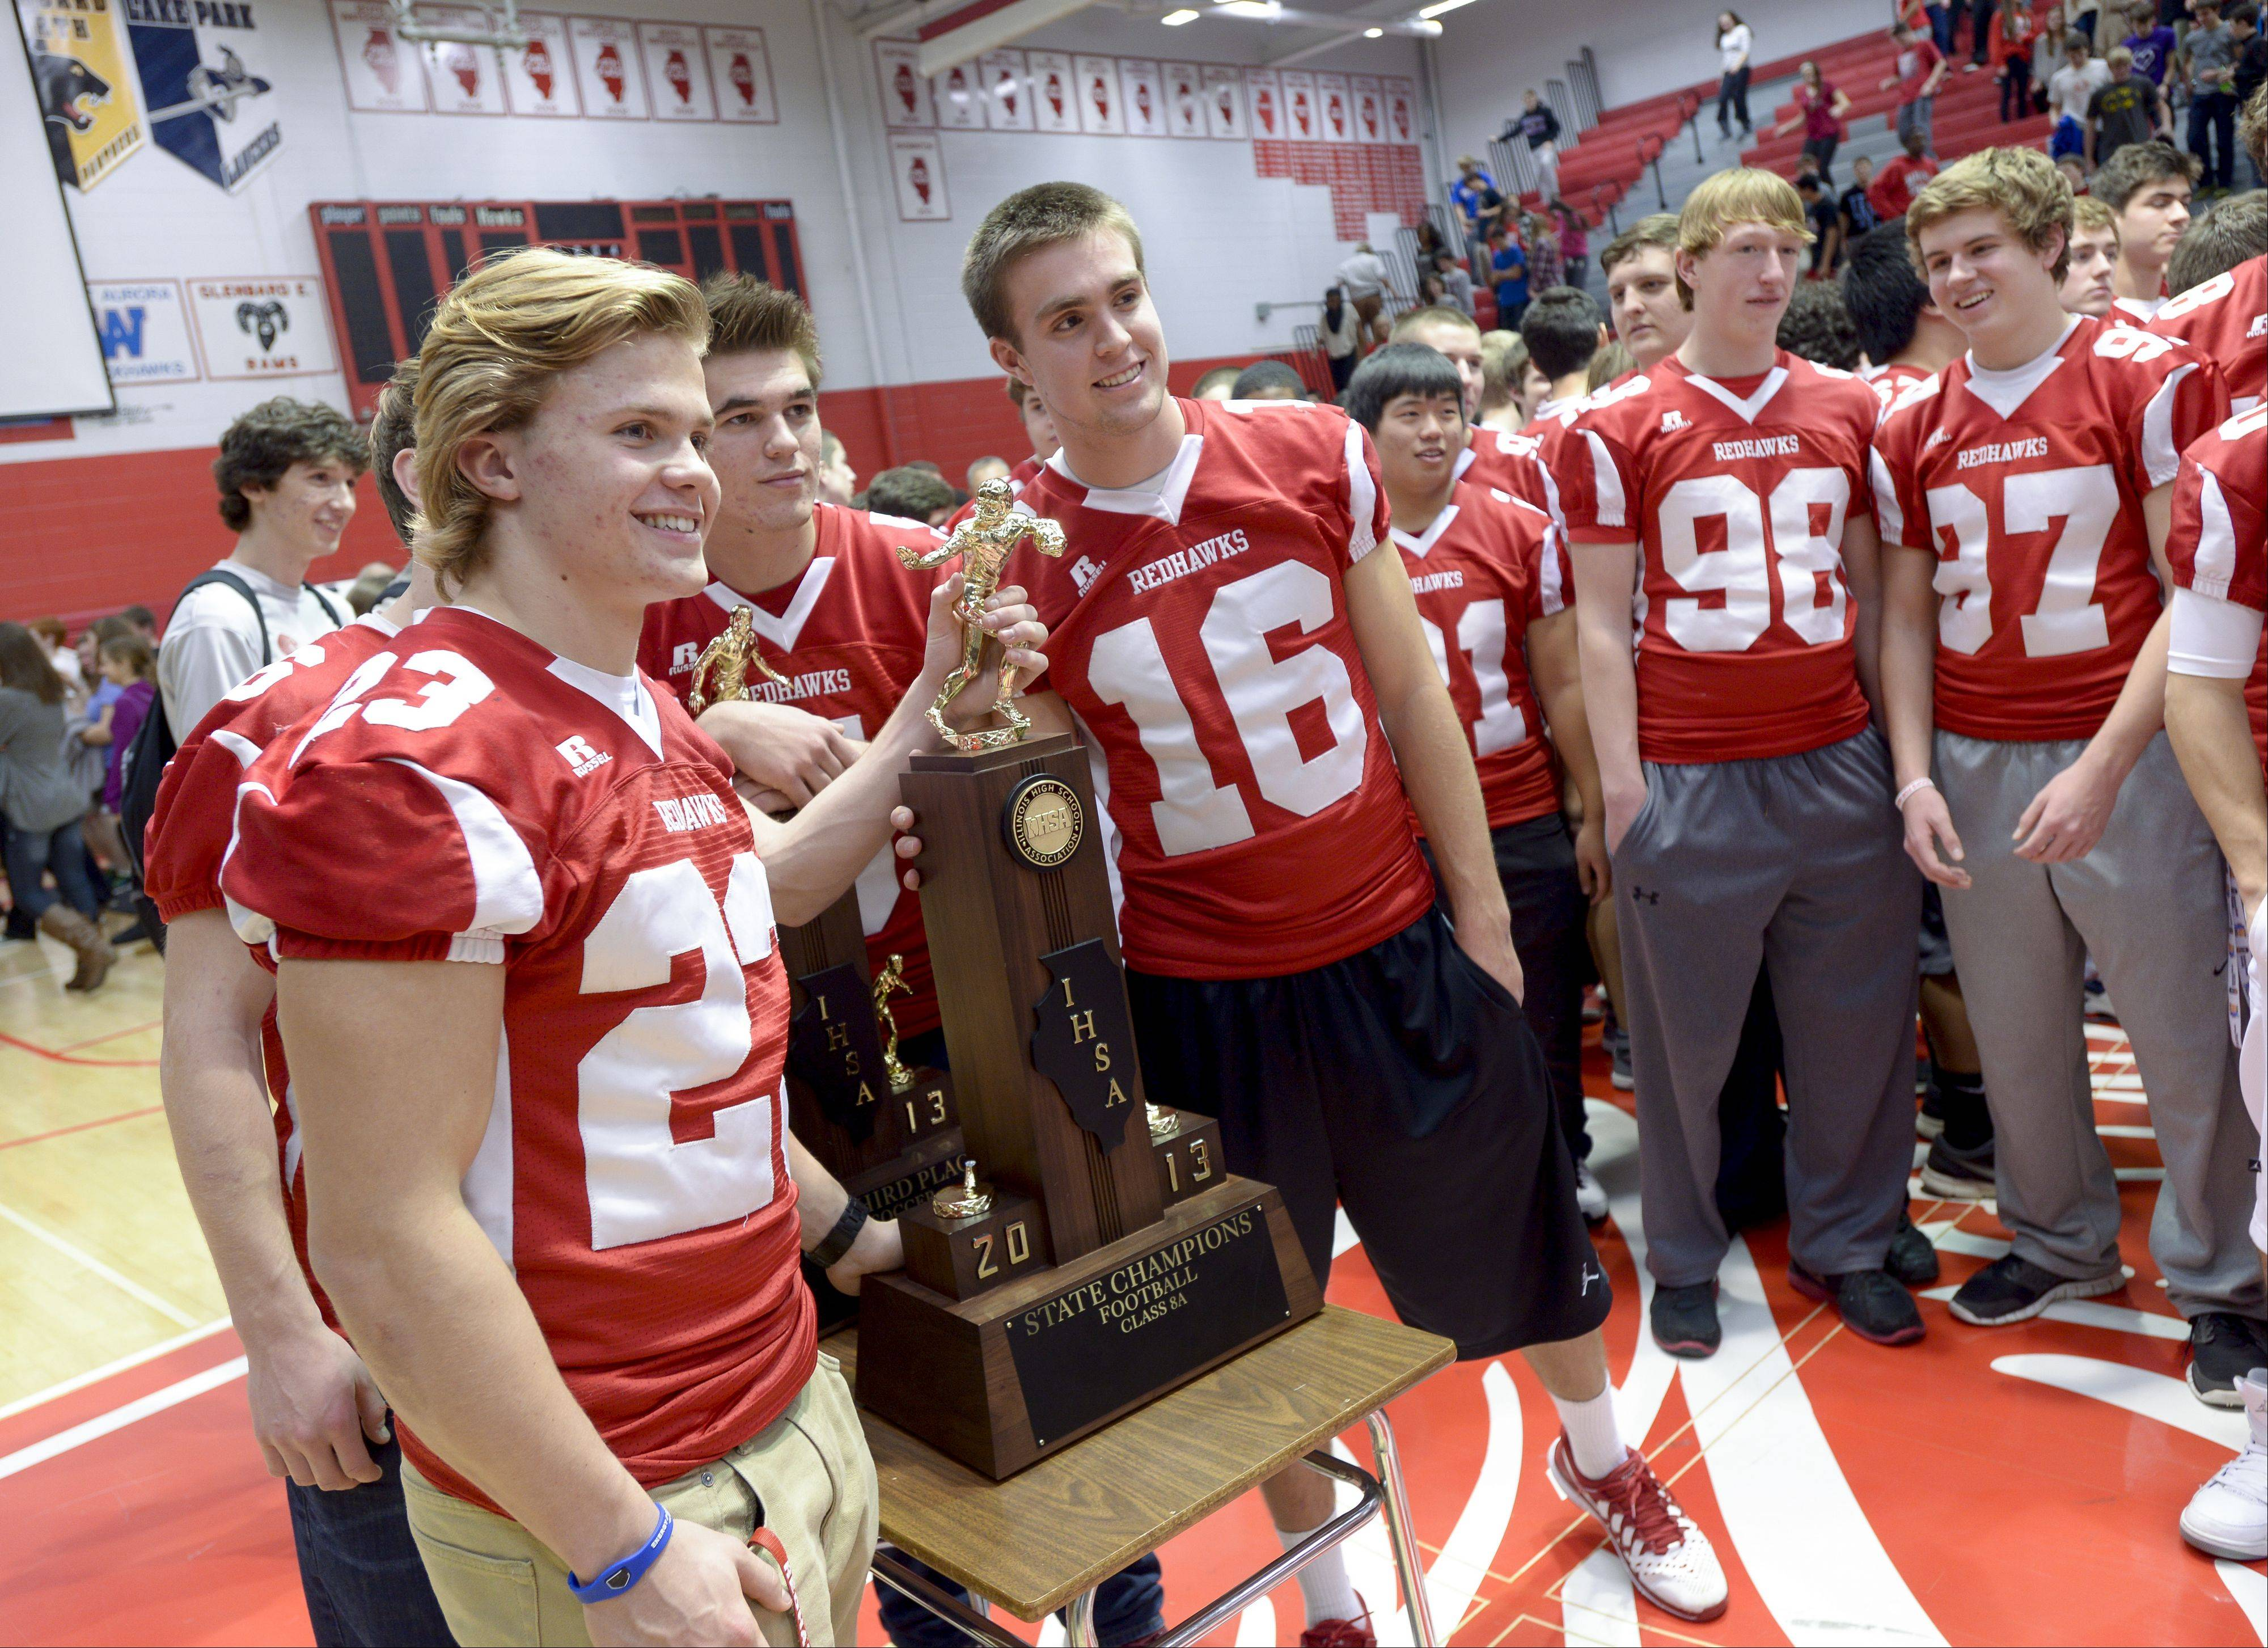 Members of the Naperville Central High School Redhawks football team pose during an assembly Wednesday with the Class 8A state championship trophy they won by beating Loyola 13-10 on Saturday in DeKalb. This is the school's second football championship and its first since 1999.